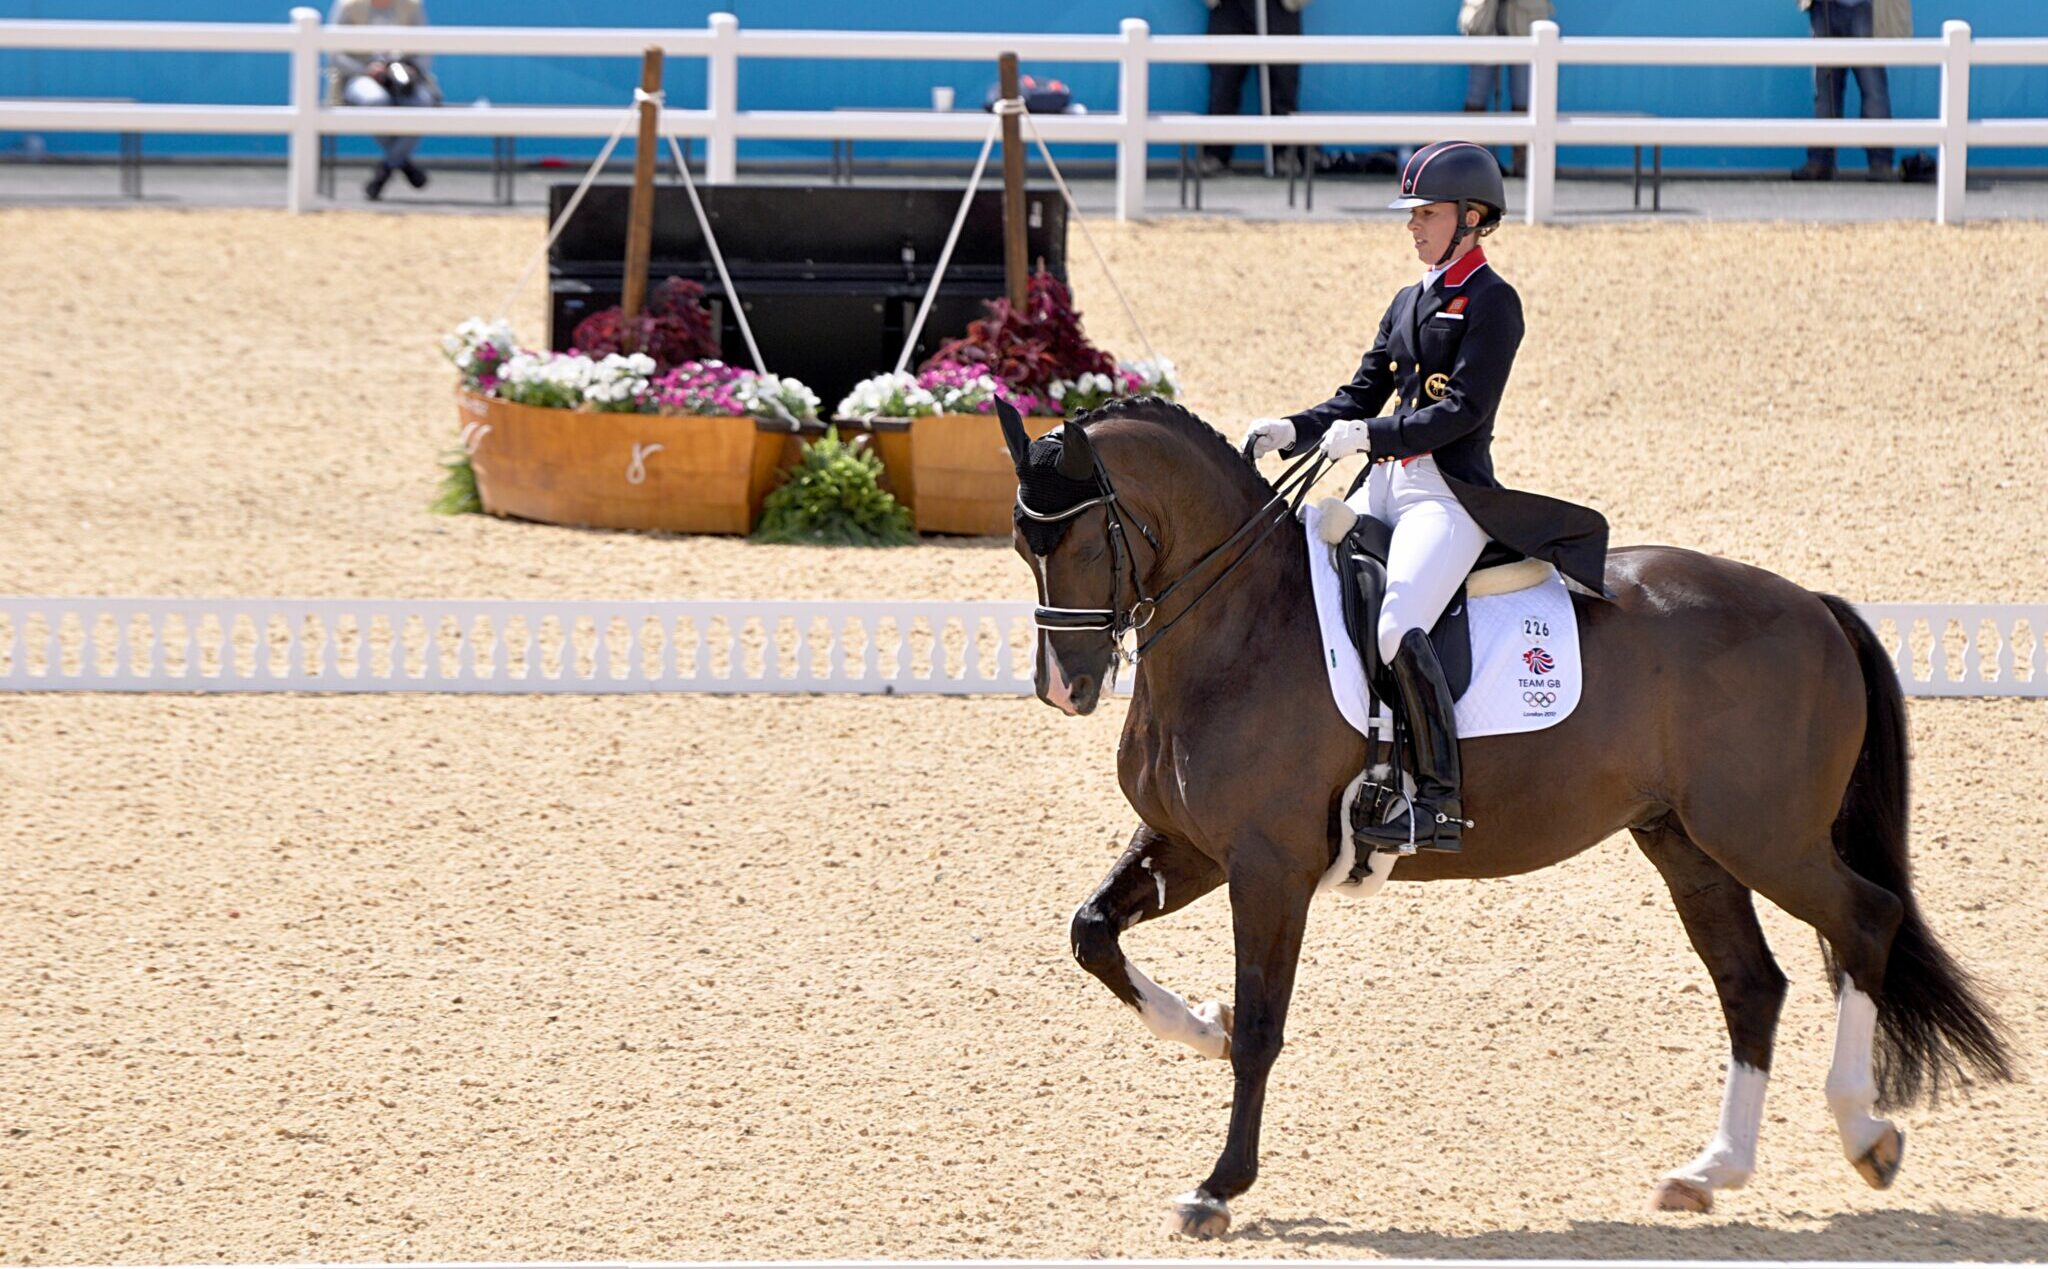 Charlotte Dujardin and Valegro - image by Equestrian on Wikimedia Commons (CC BY-SA 3.0) - Globetrotting horse riding holidays